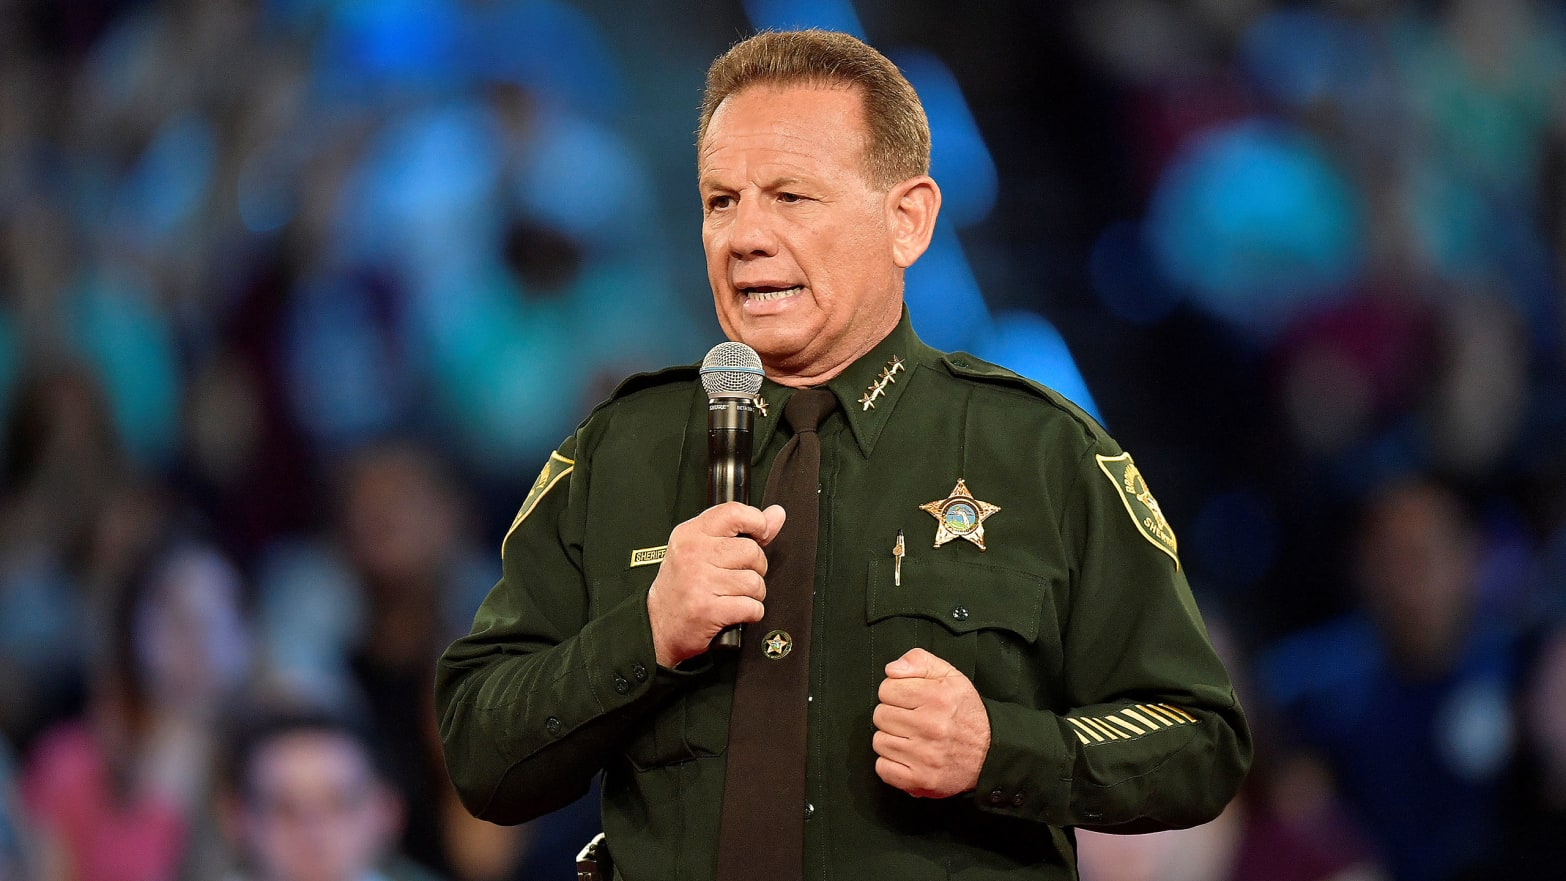 Broward County Sheriff Scott Israel speaks before the start of a CNN town hall meeting at the BB&T Center, in Sunrise, Florida